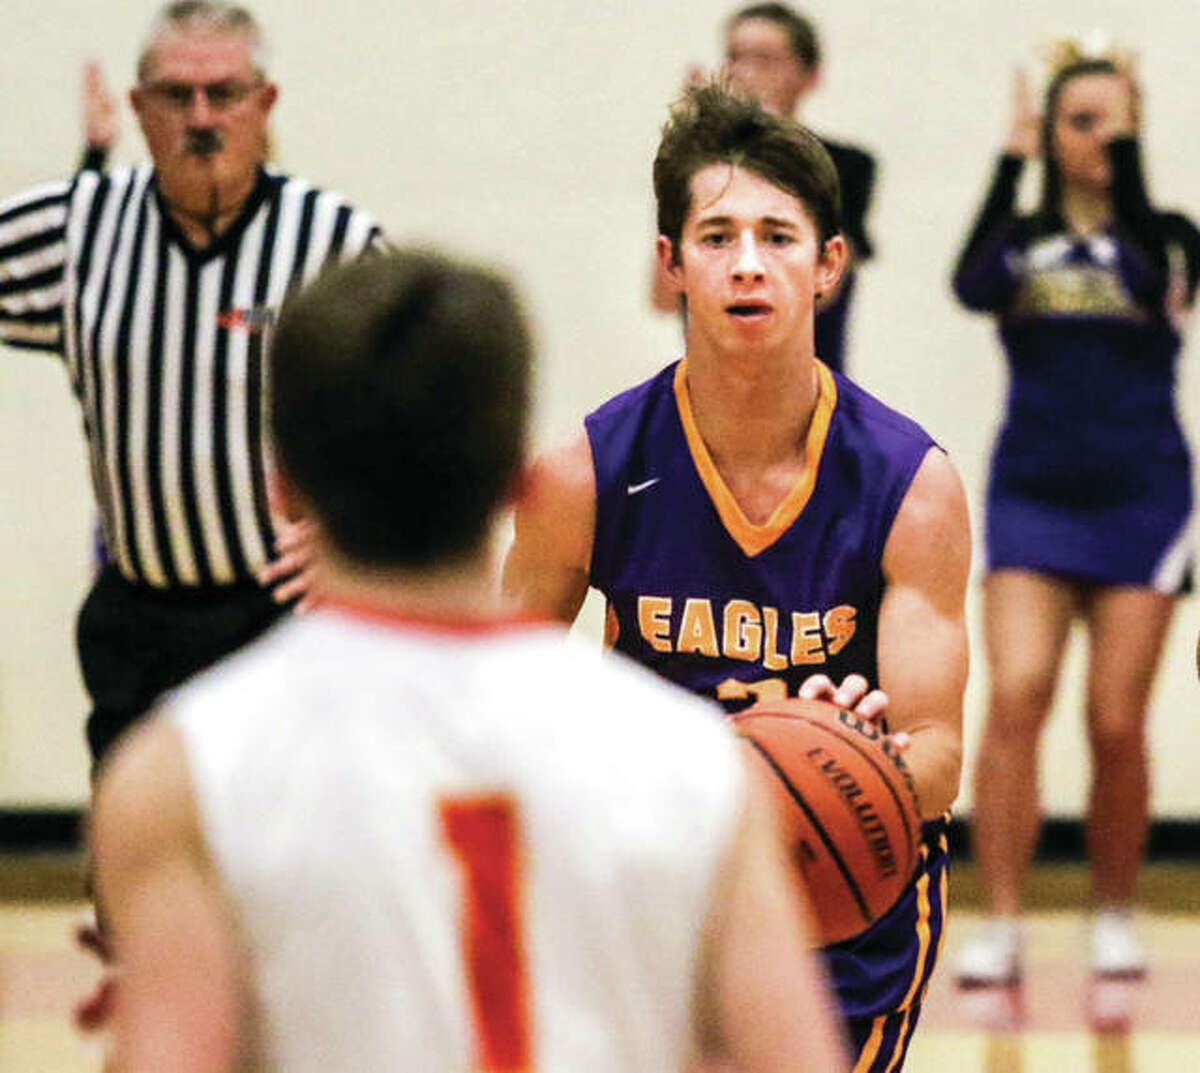 CM senior Caden Clark (right) brings the ball upcourt in a game against the Shells in Roxana on Dec. 15 in Roxana. The Eagles point guard has missed the last two games with a hip injury.